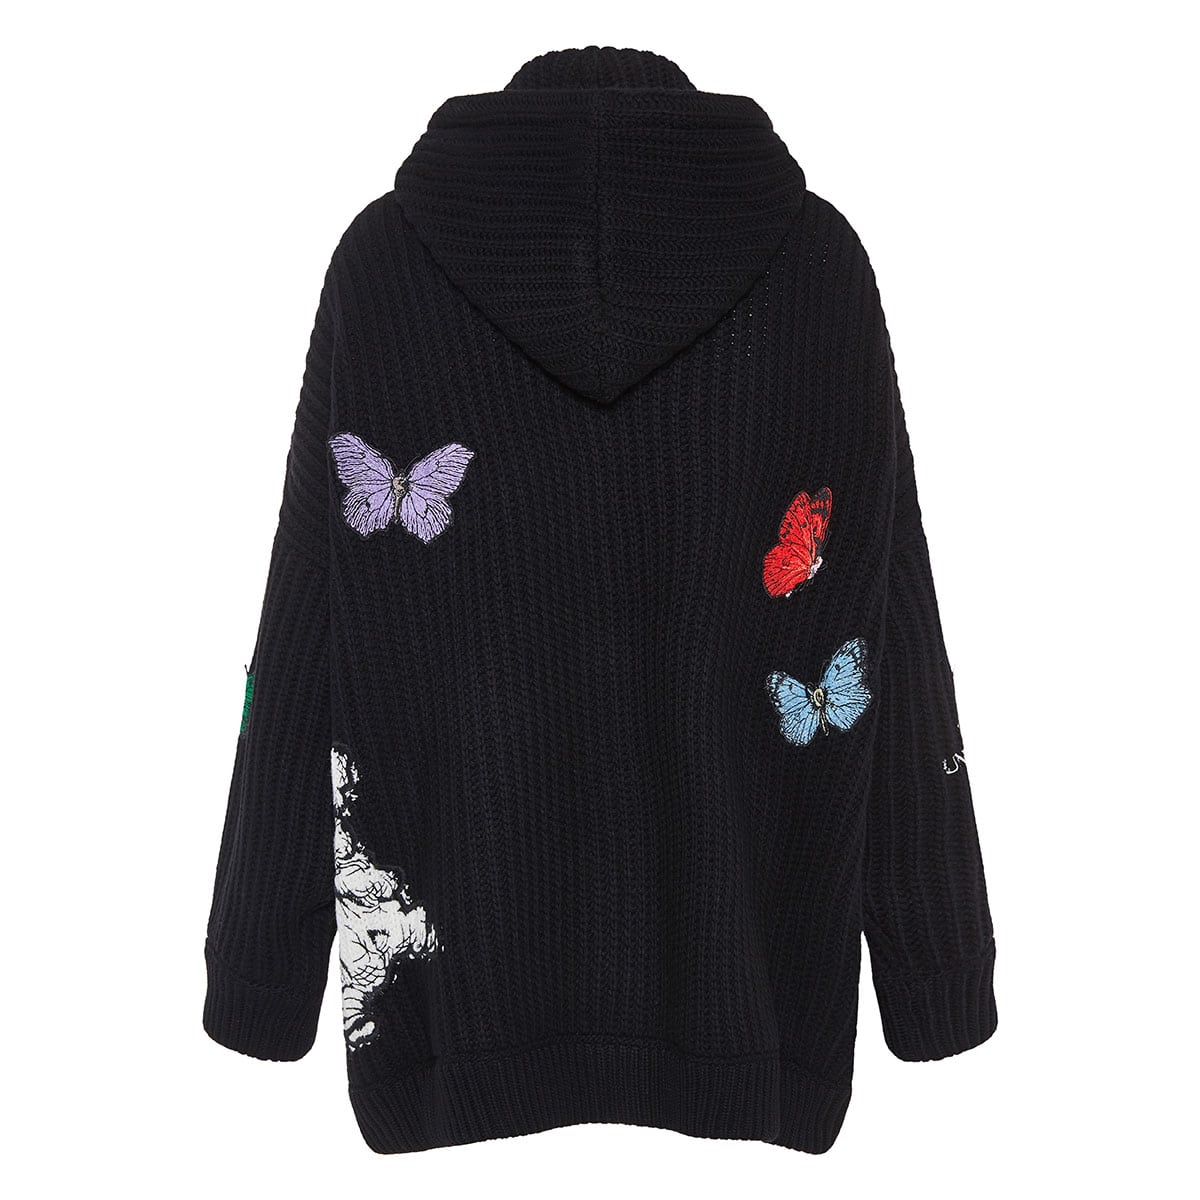 x Undercover oversized embroidered zipper cardigan